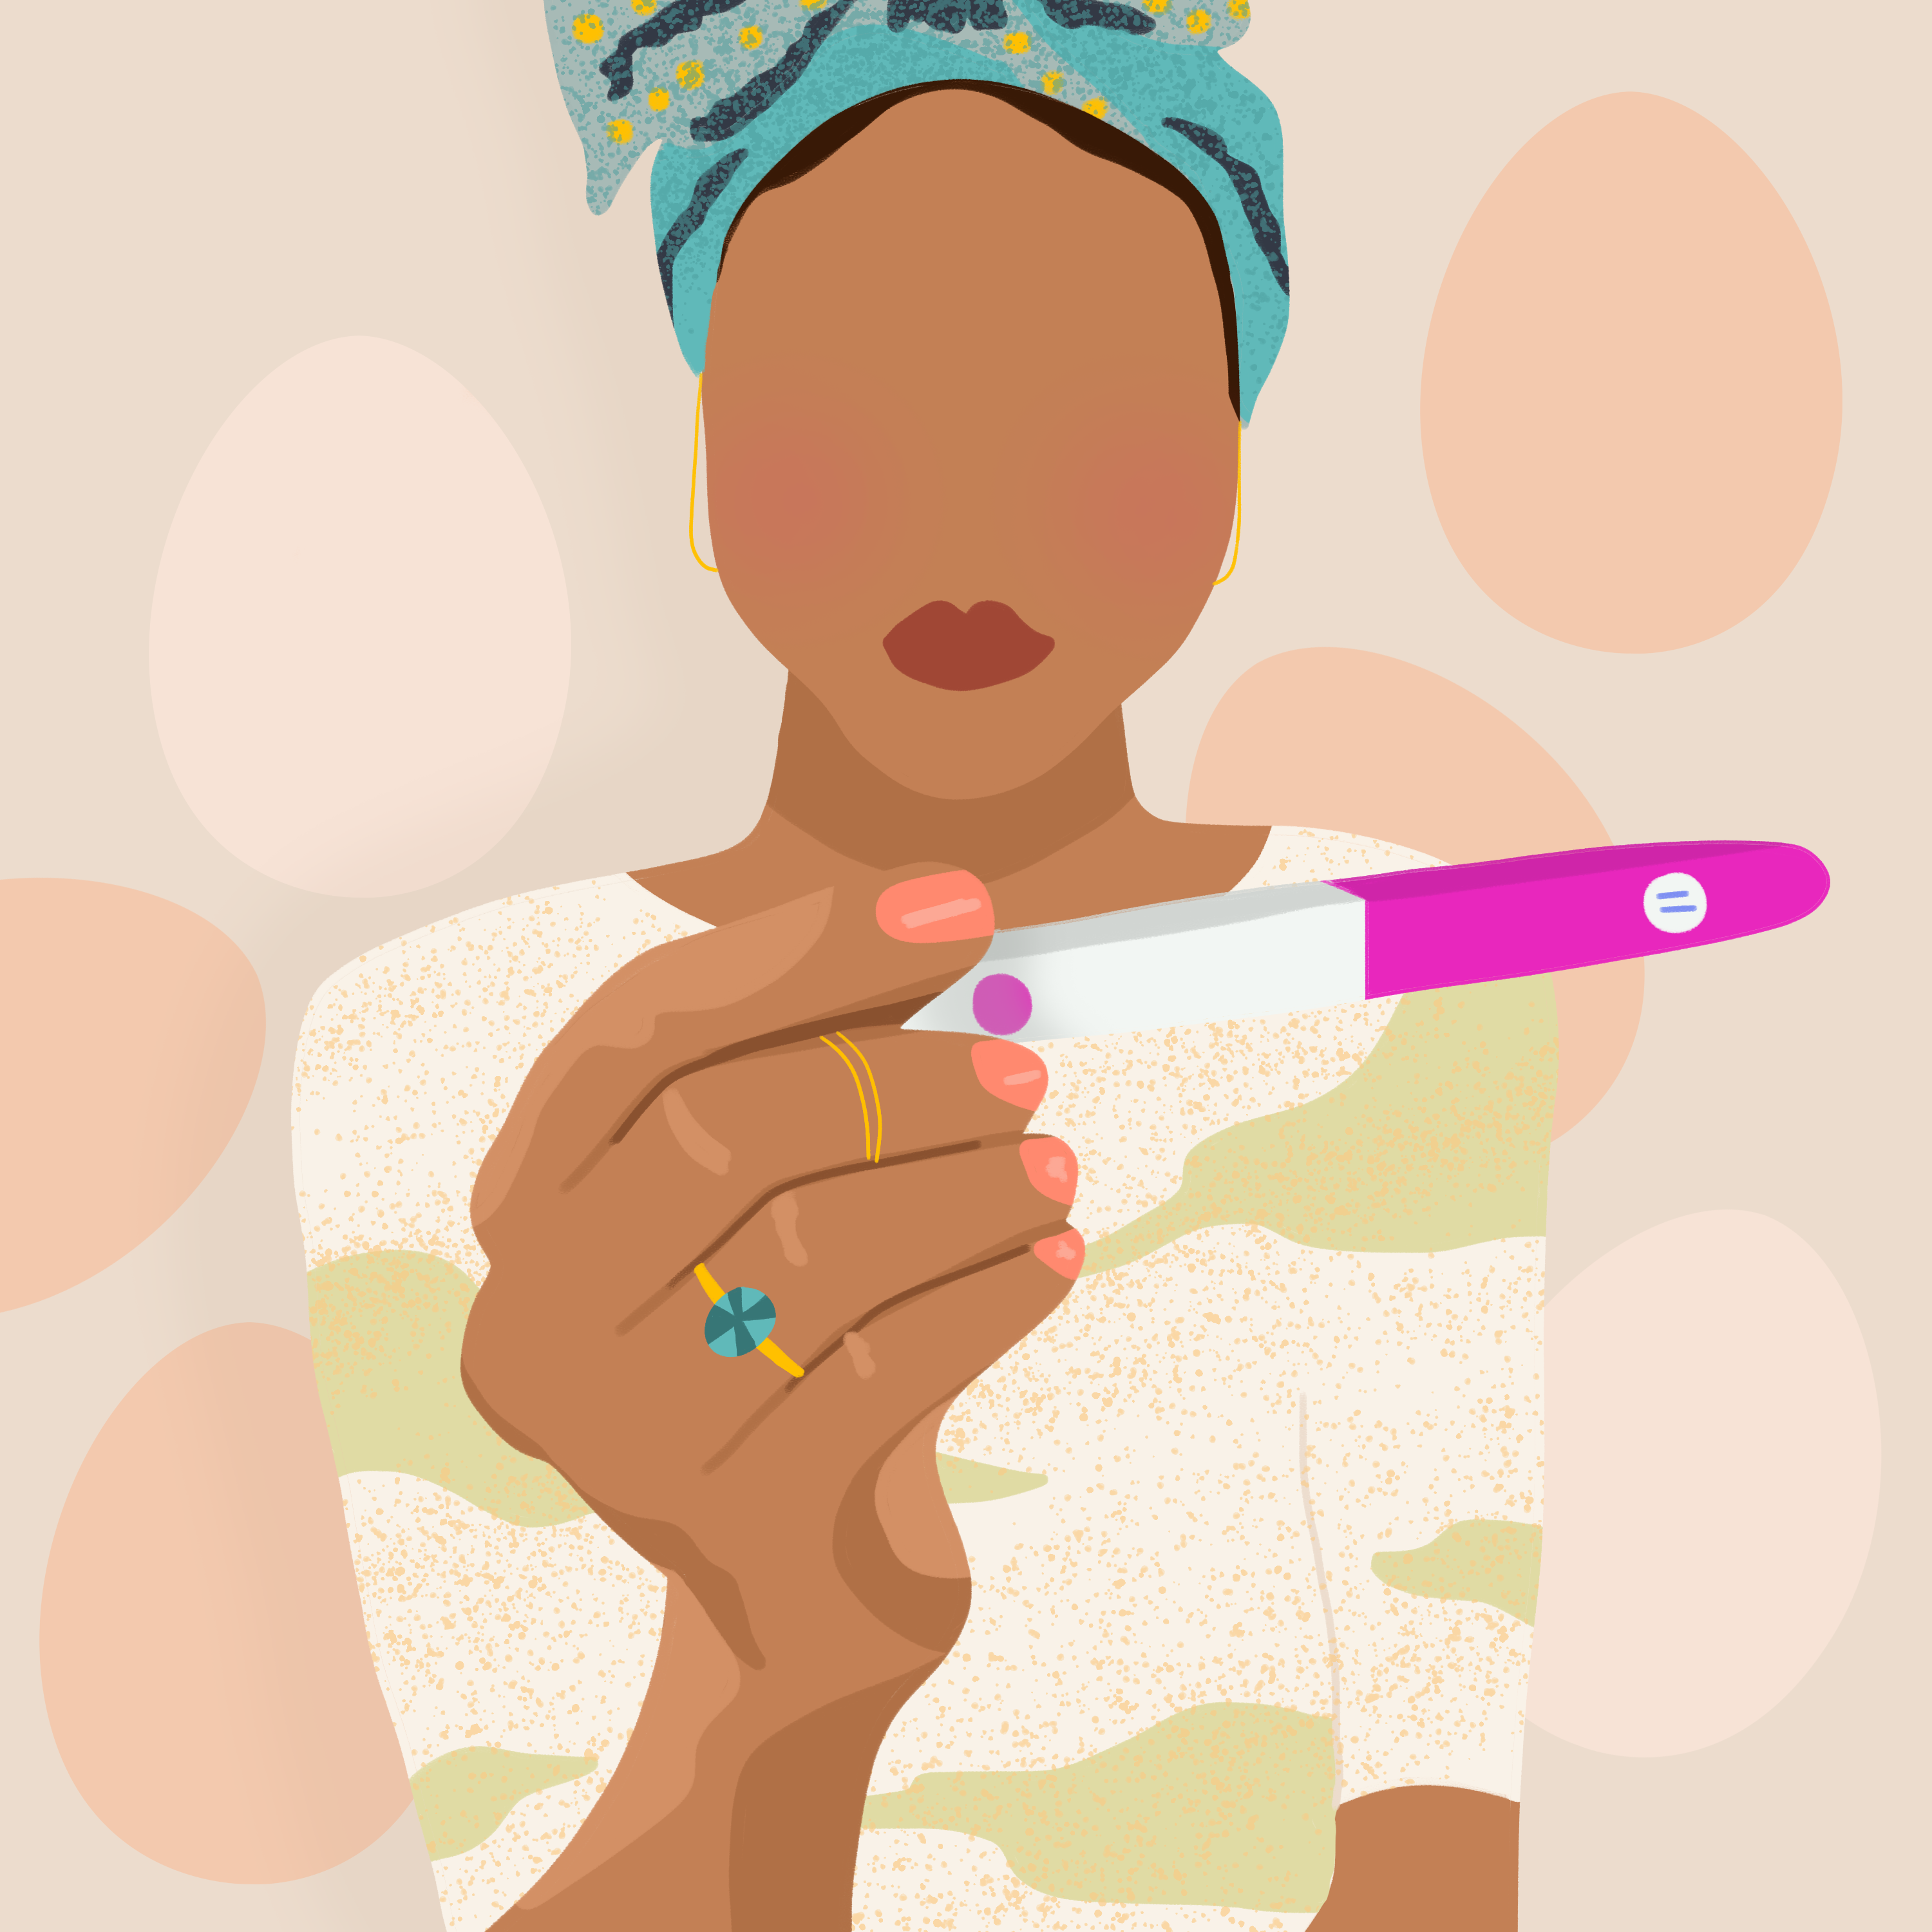 Illustration of woman looking at pregnancy test